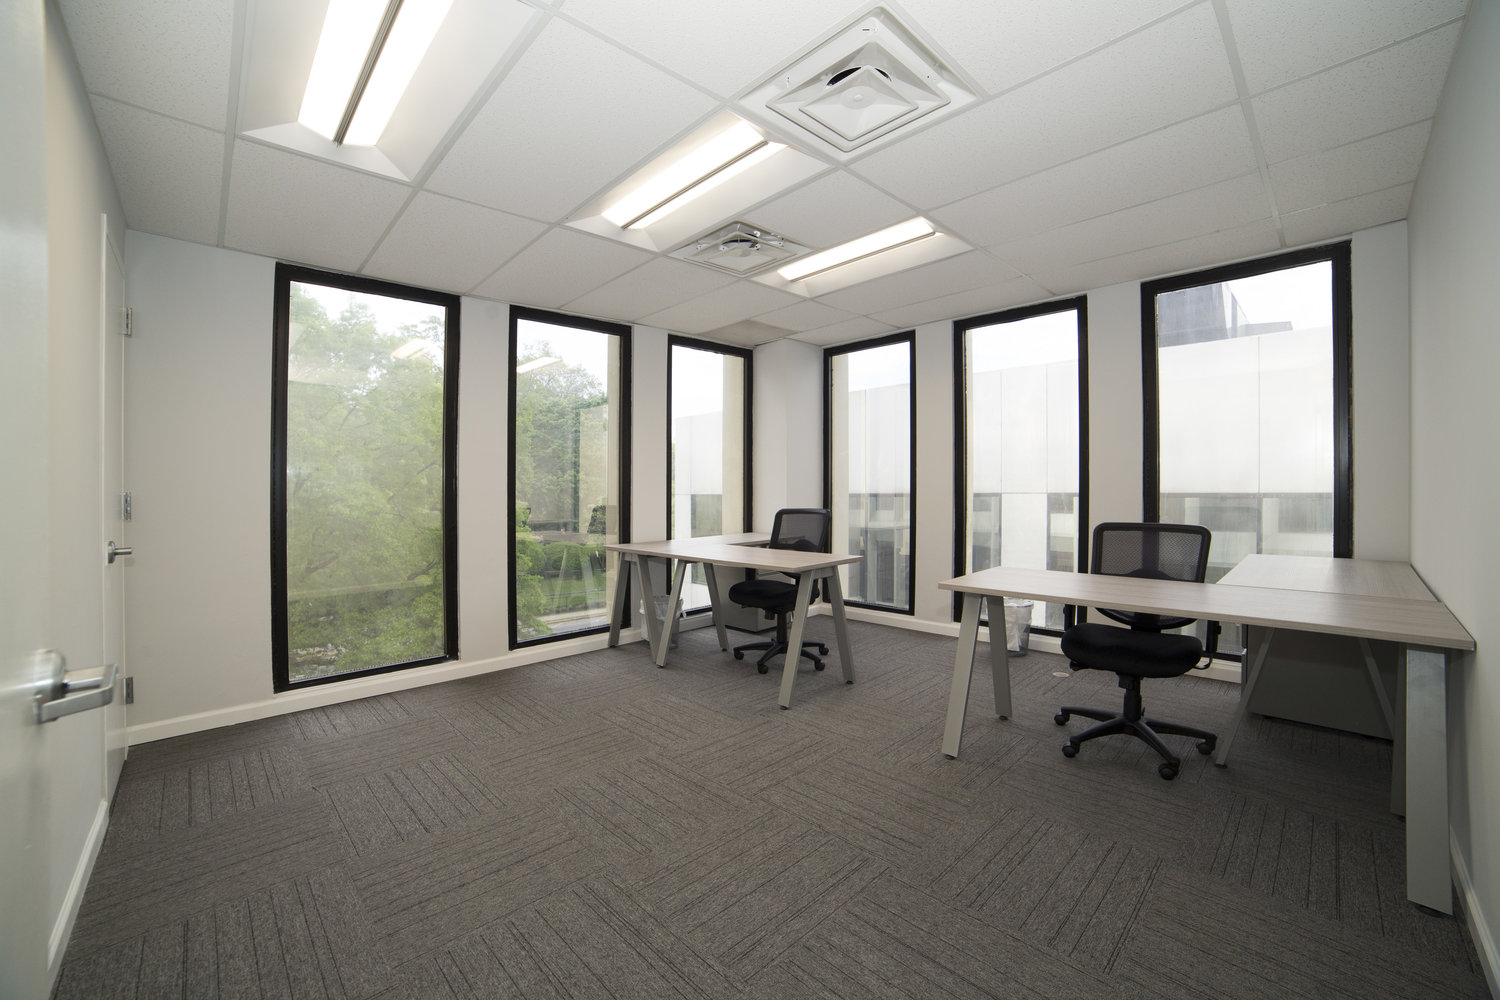 Small Business Office Space Best Commercial Small Business Office Space For Rent Office Villas